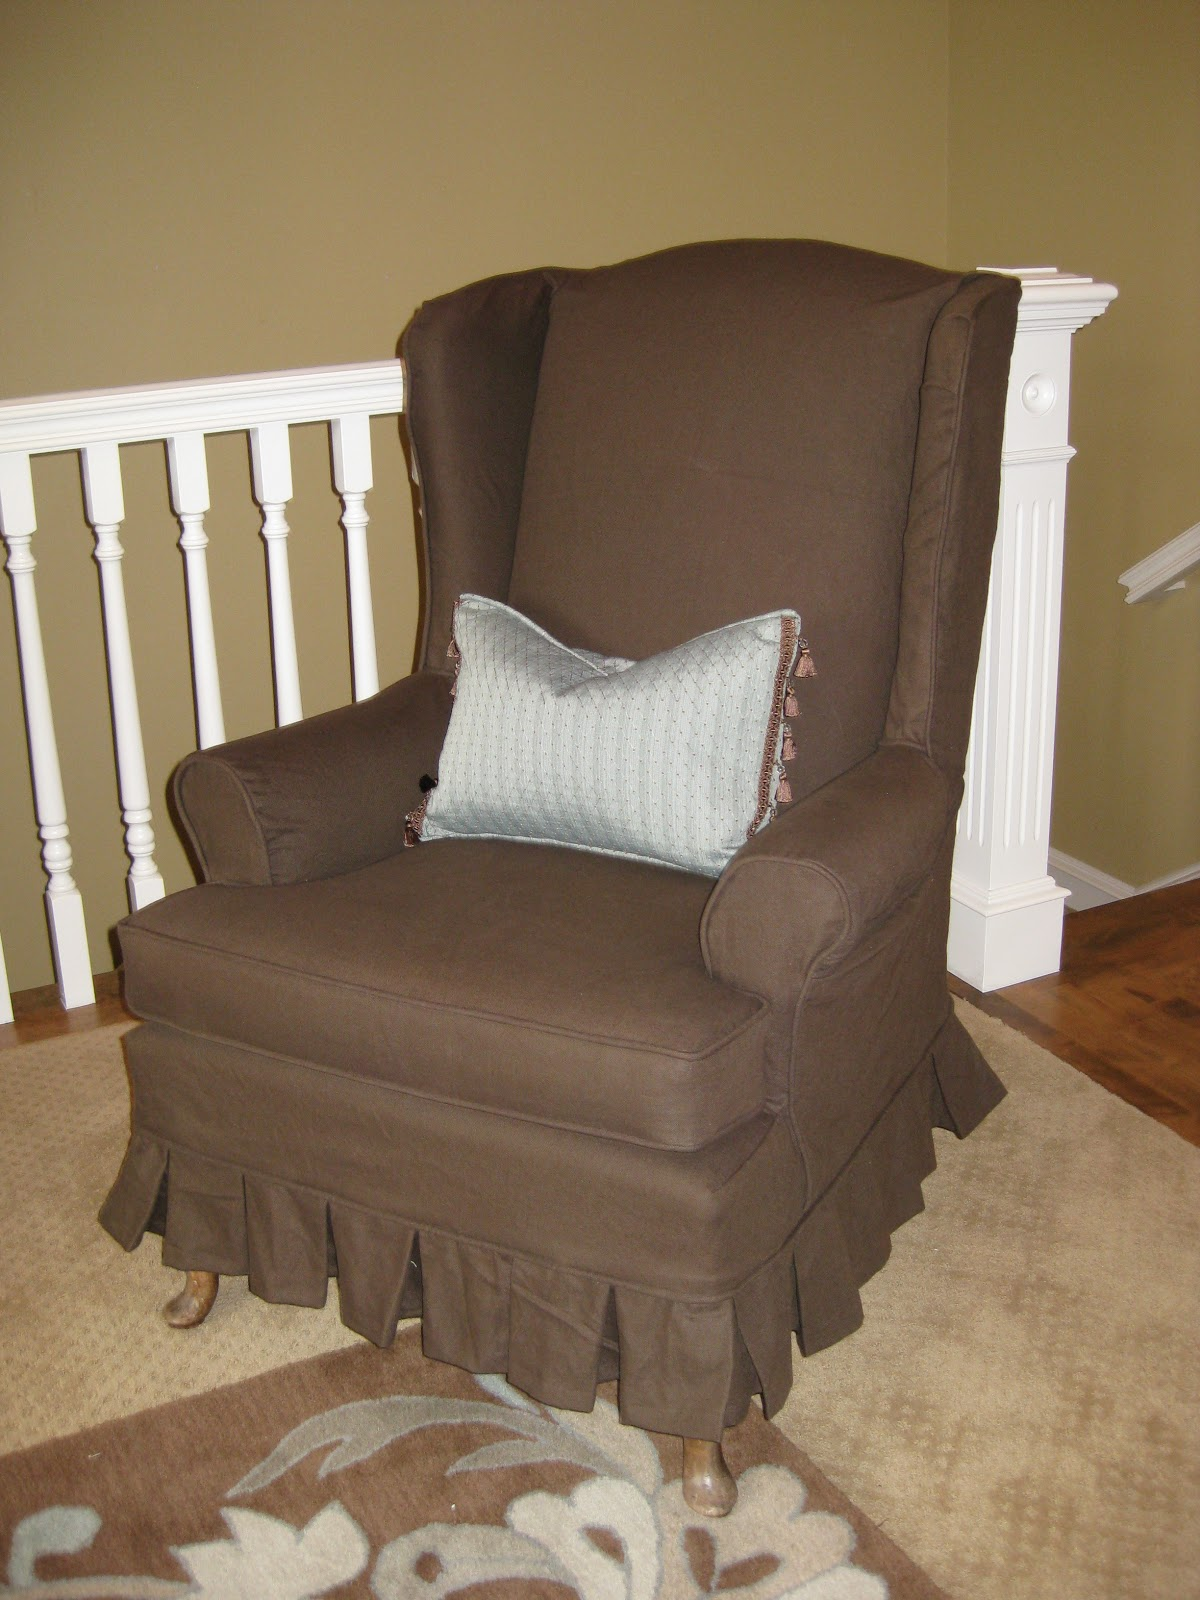 Slipcovers For Wingback Chair Custom Slipcovers By Shelley Chocolate Brown Wingback Chair